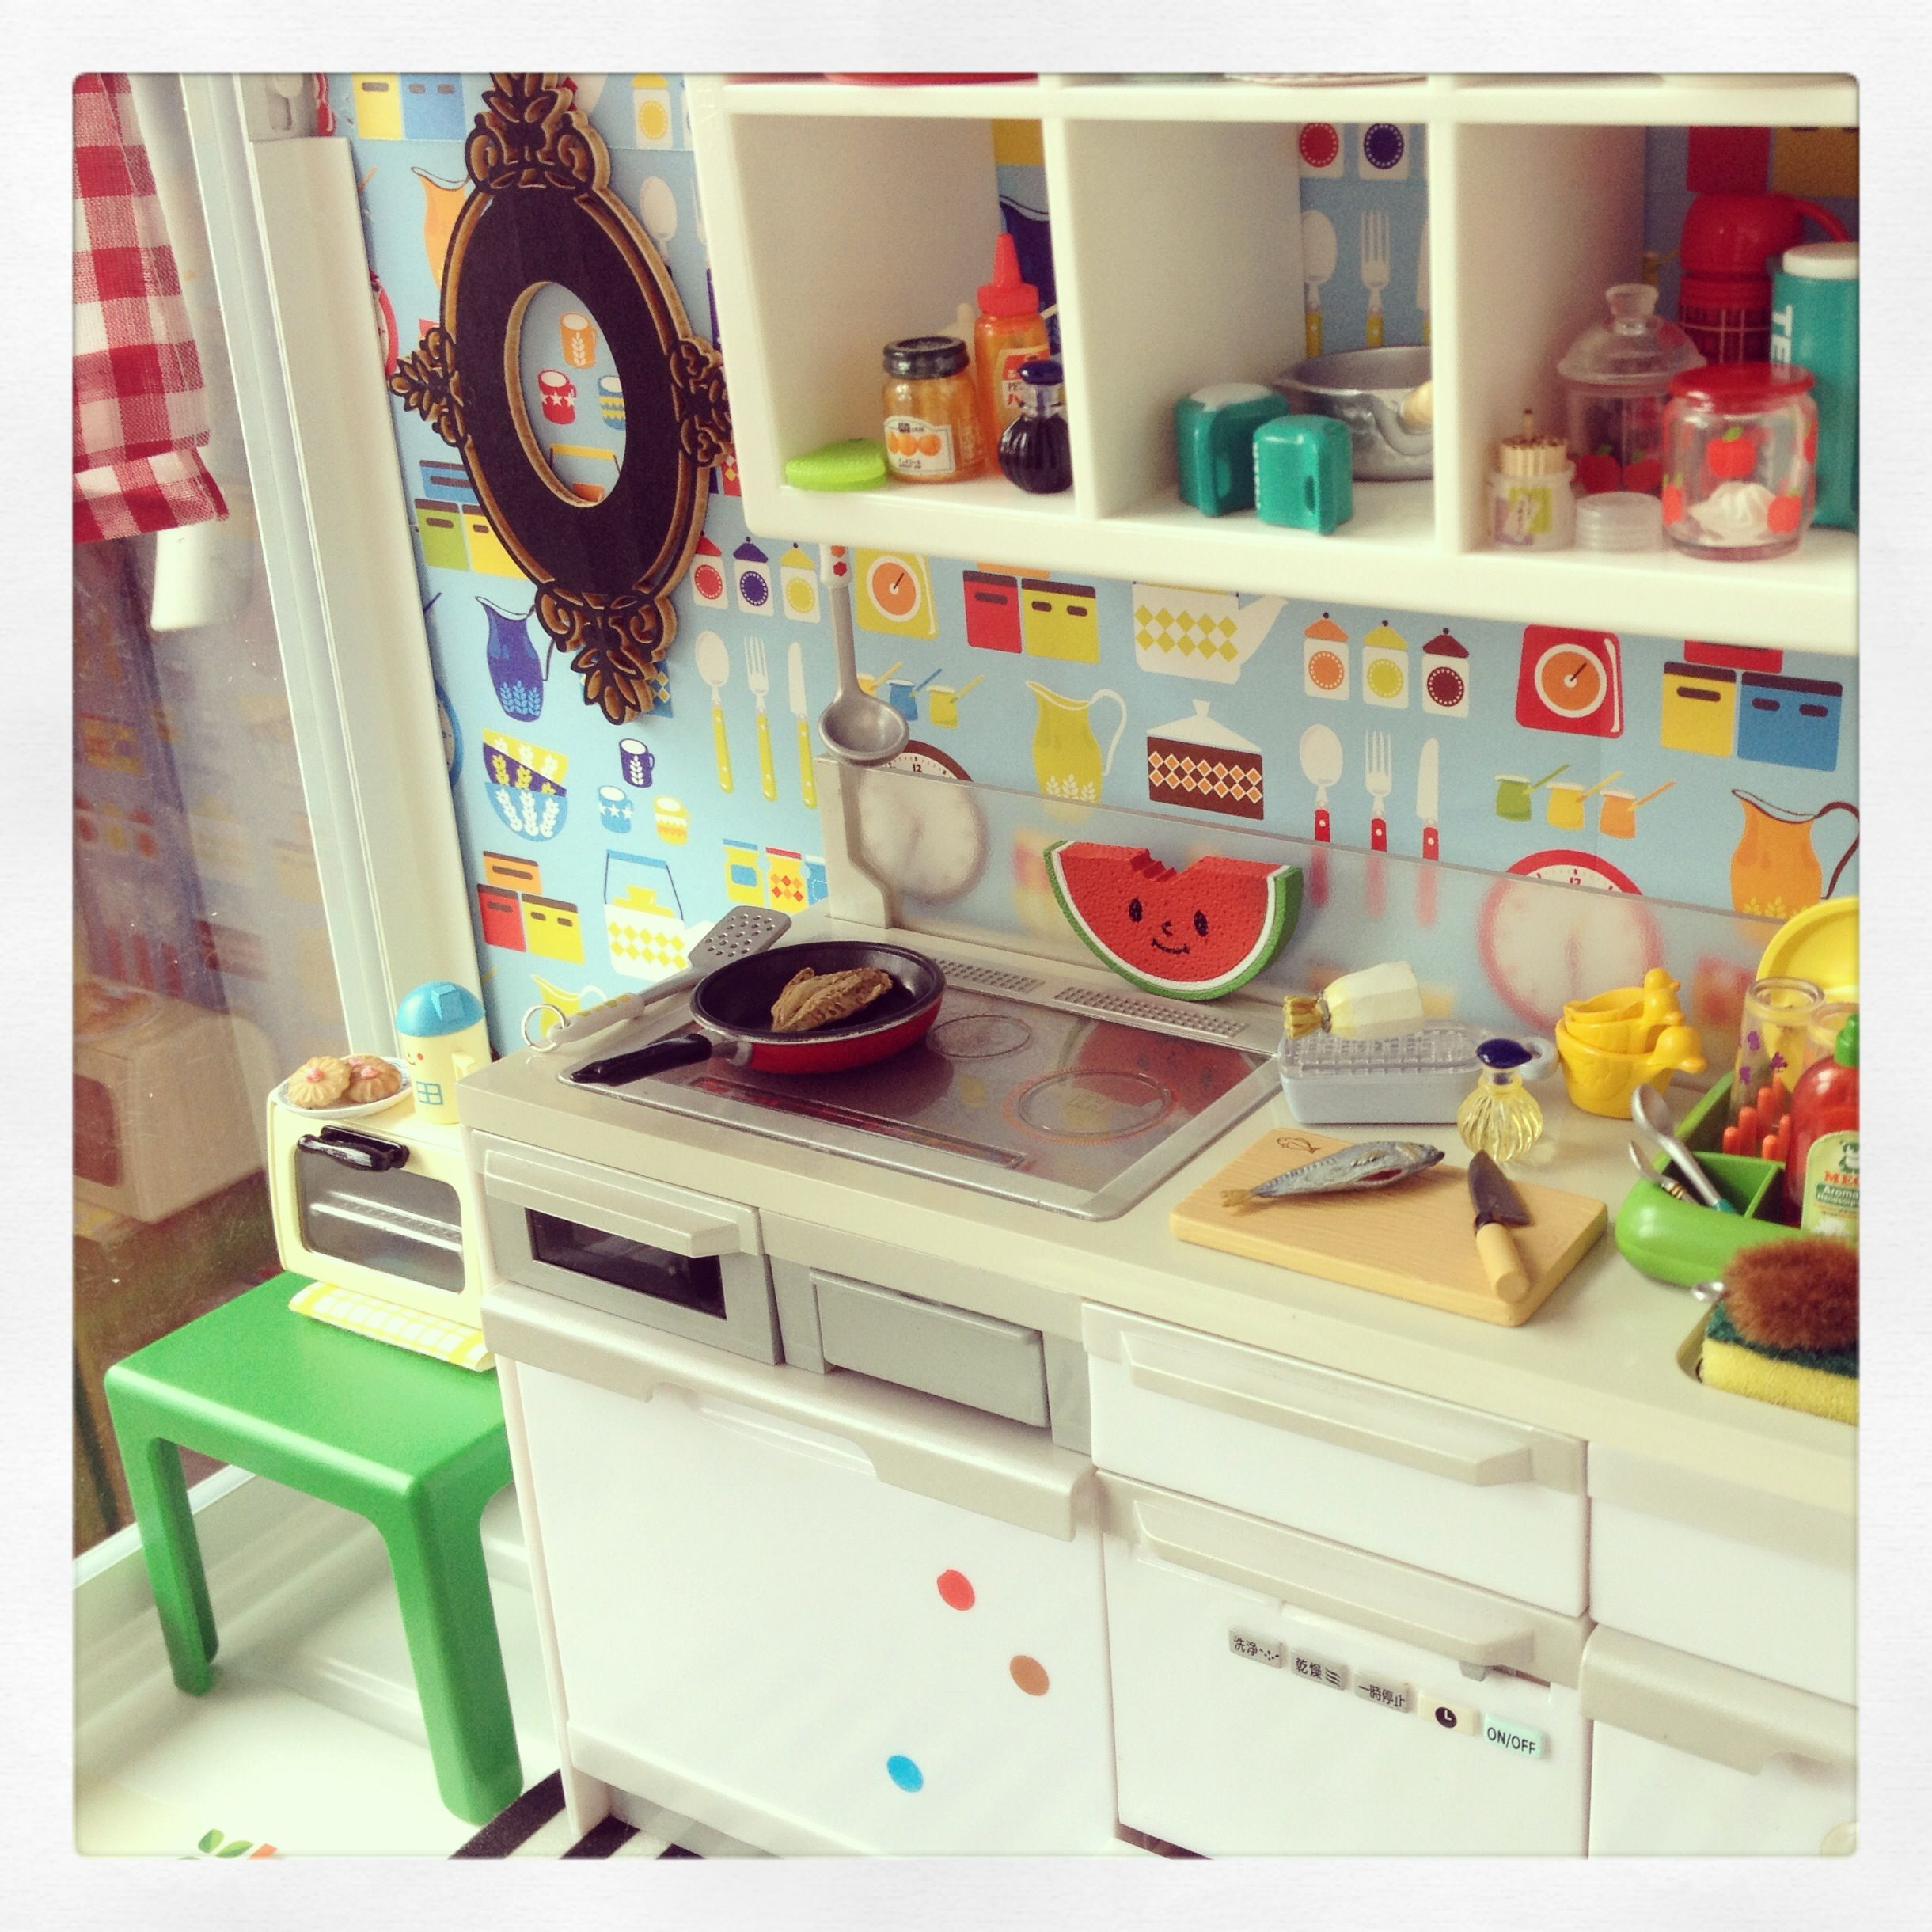 ikea huset doll furniture. rement setup in an ikea greenhouse by 2smartminiatures huset doll furniture